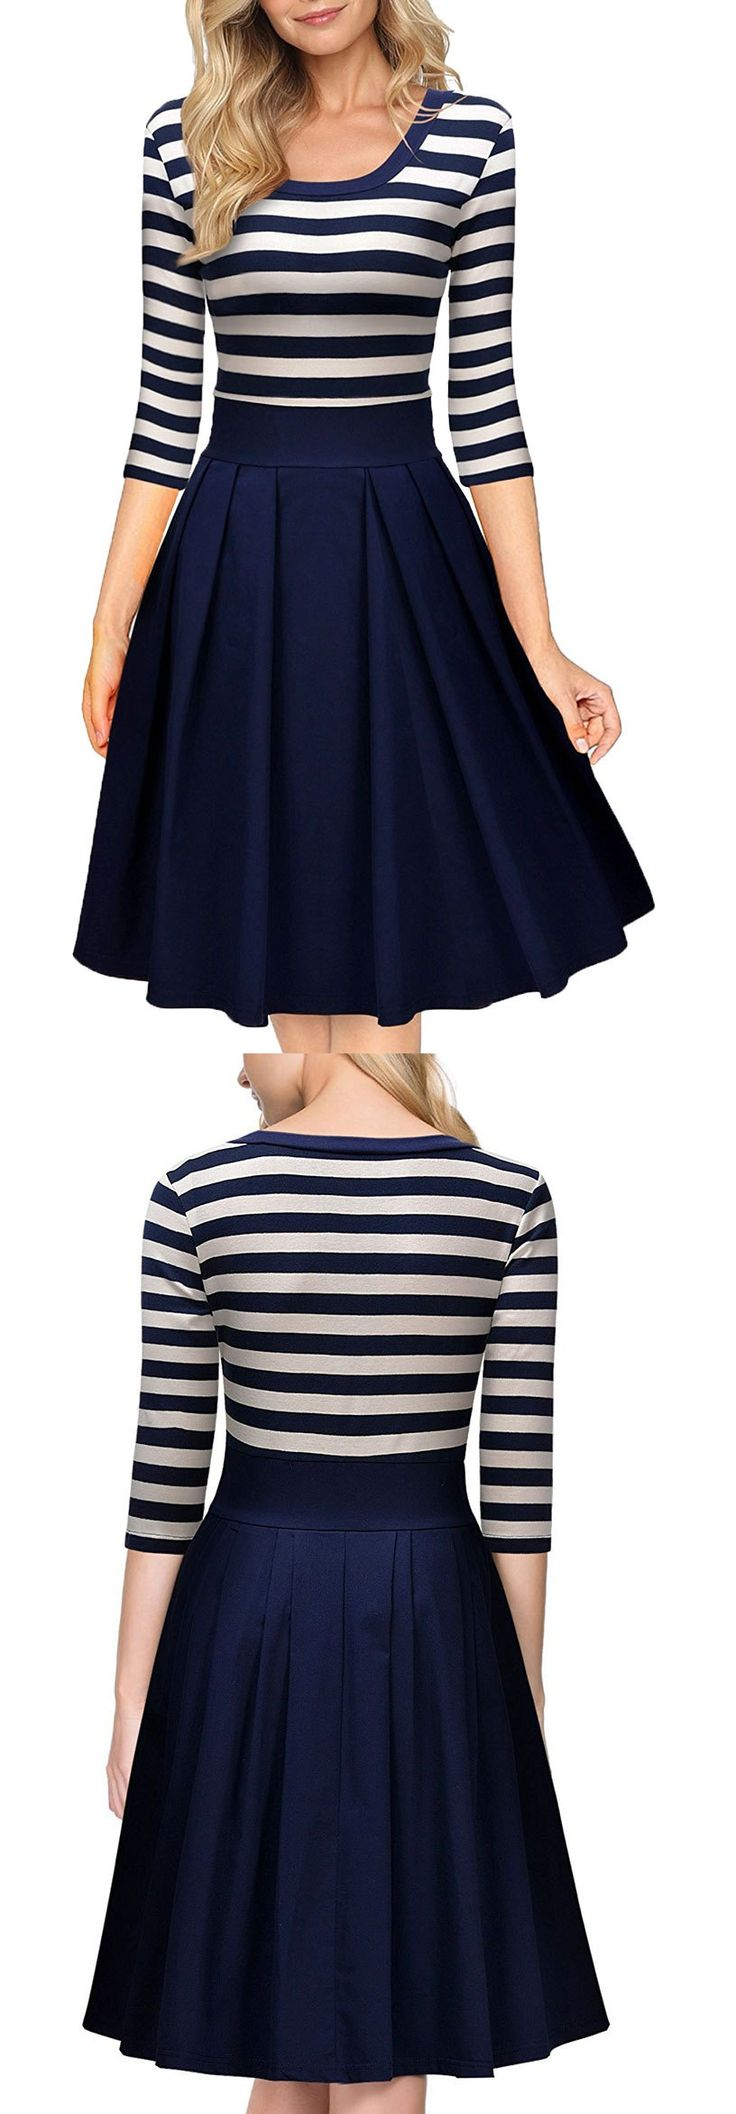 Striped is the most classic elements that you can't miss. Just try this combo dress and change another moods.